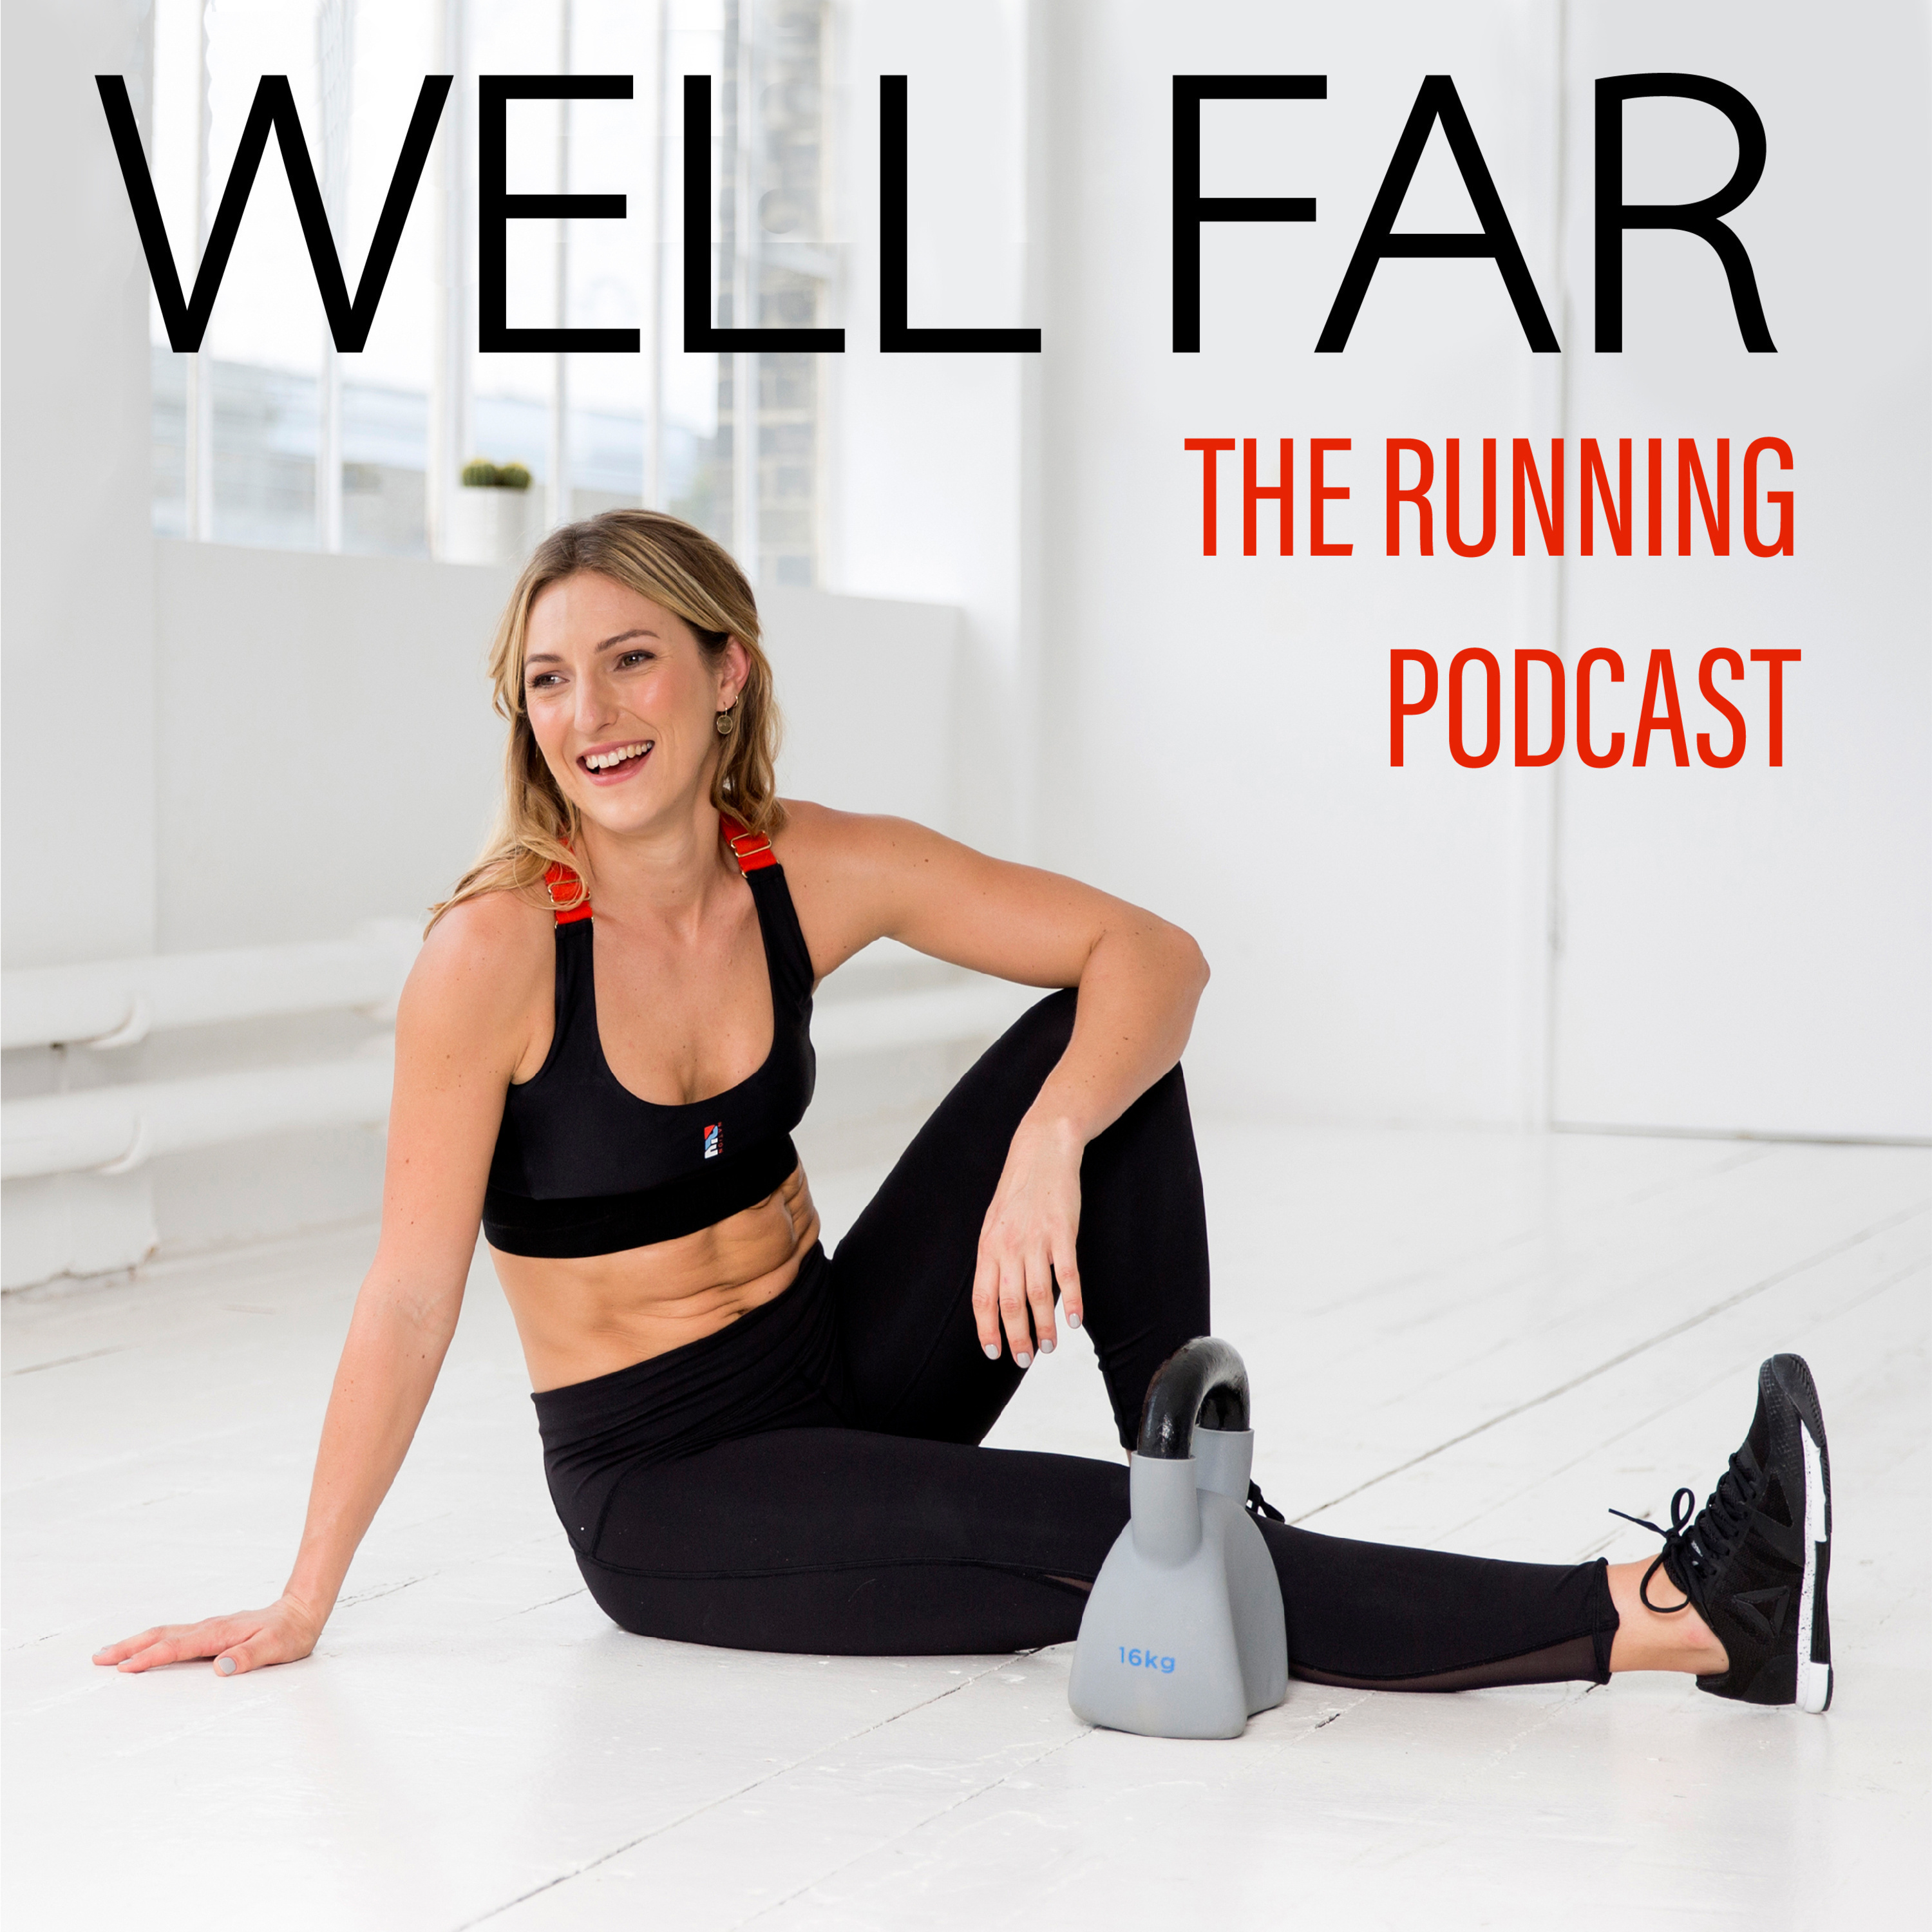 Why we run and how to fuel ourselves, with Anita Bean and Esmee Anderson